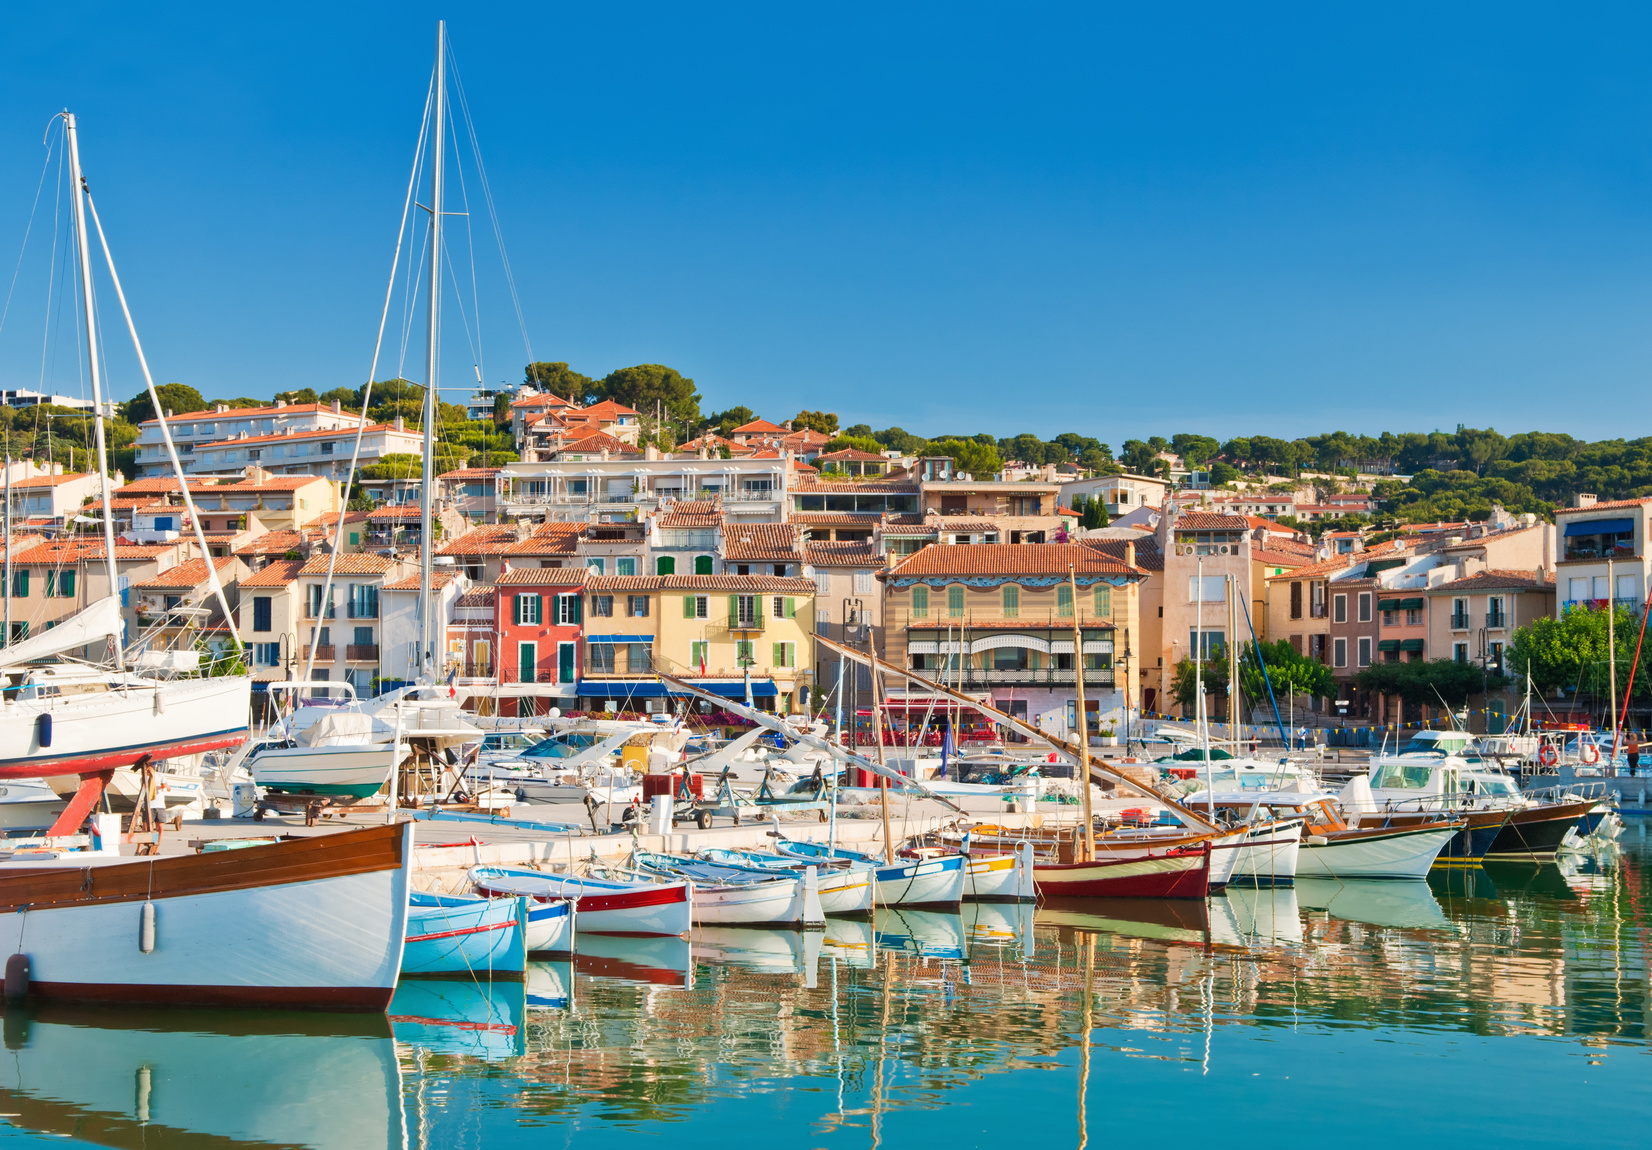 The beautiful town of Cassis in the French Riviera photographed during a clear morning